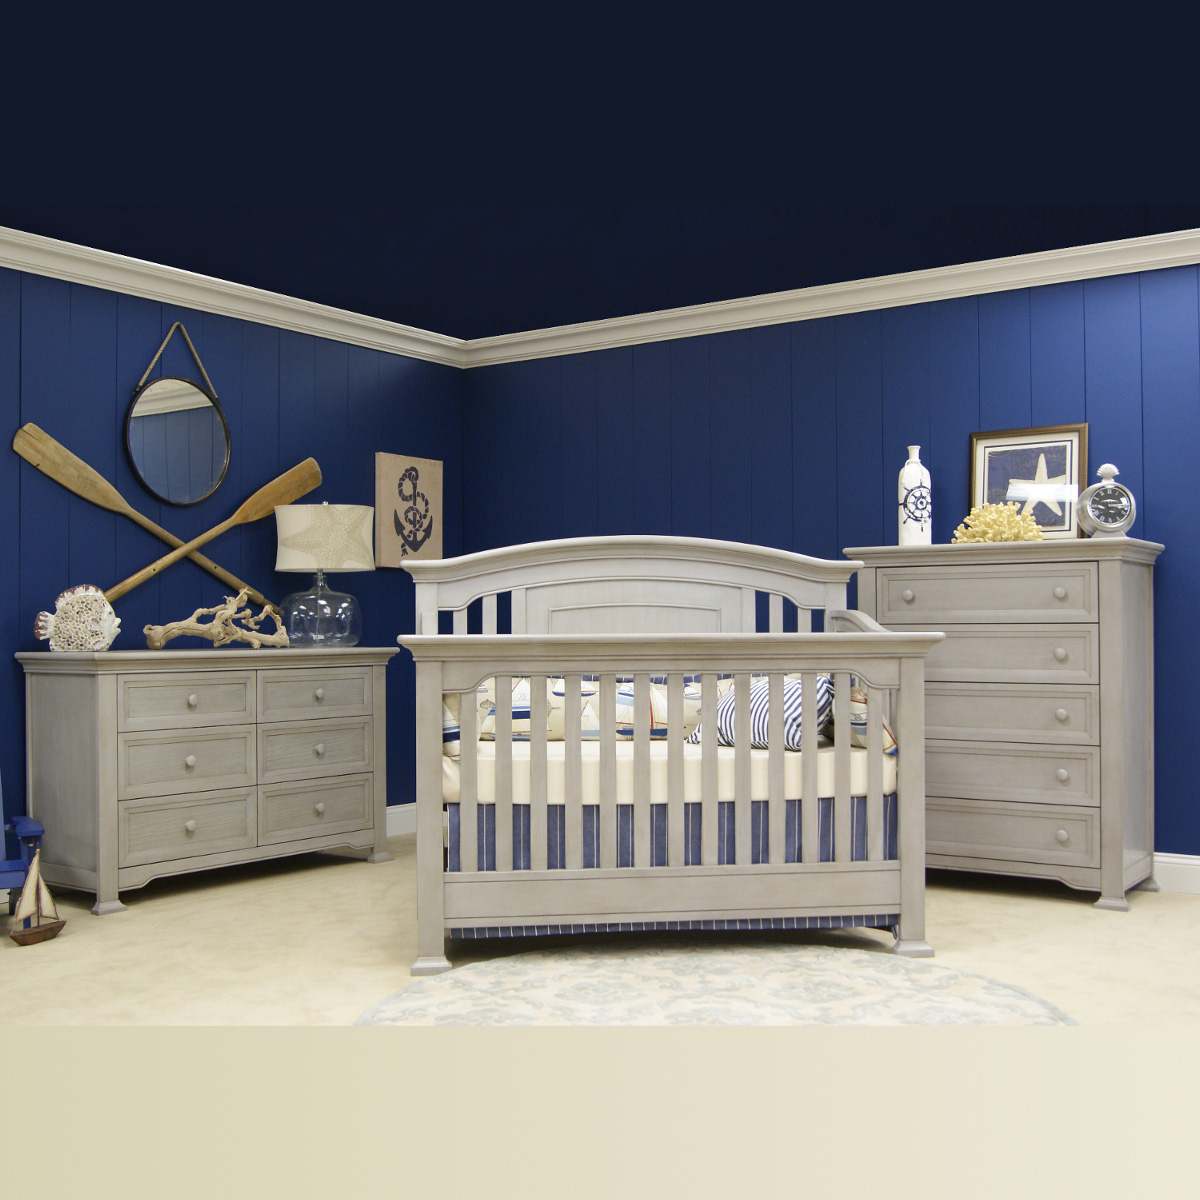 Munire 3 Piece Nursery Set Medford Lifetime Crib 6 Drawer Double Dresser And 5